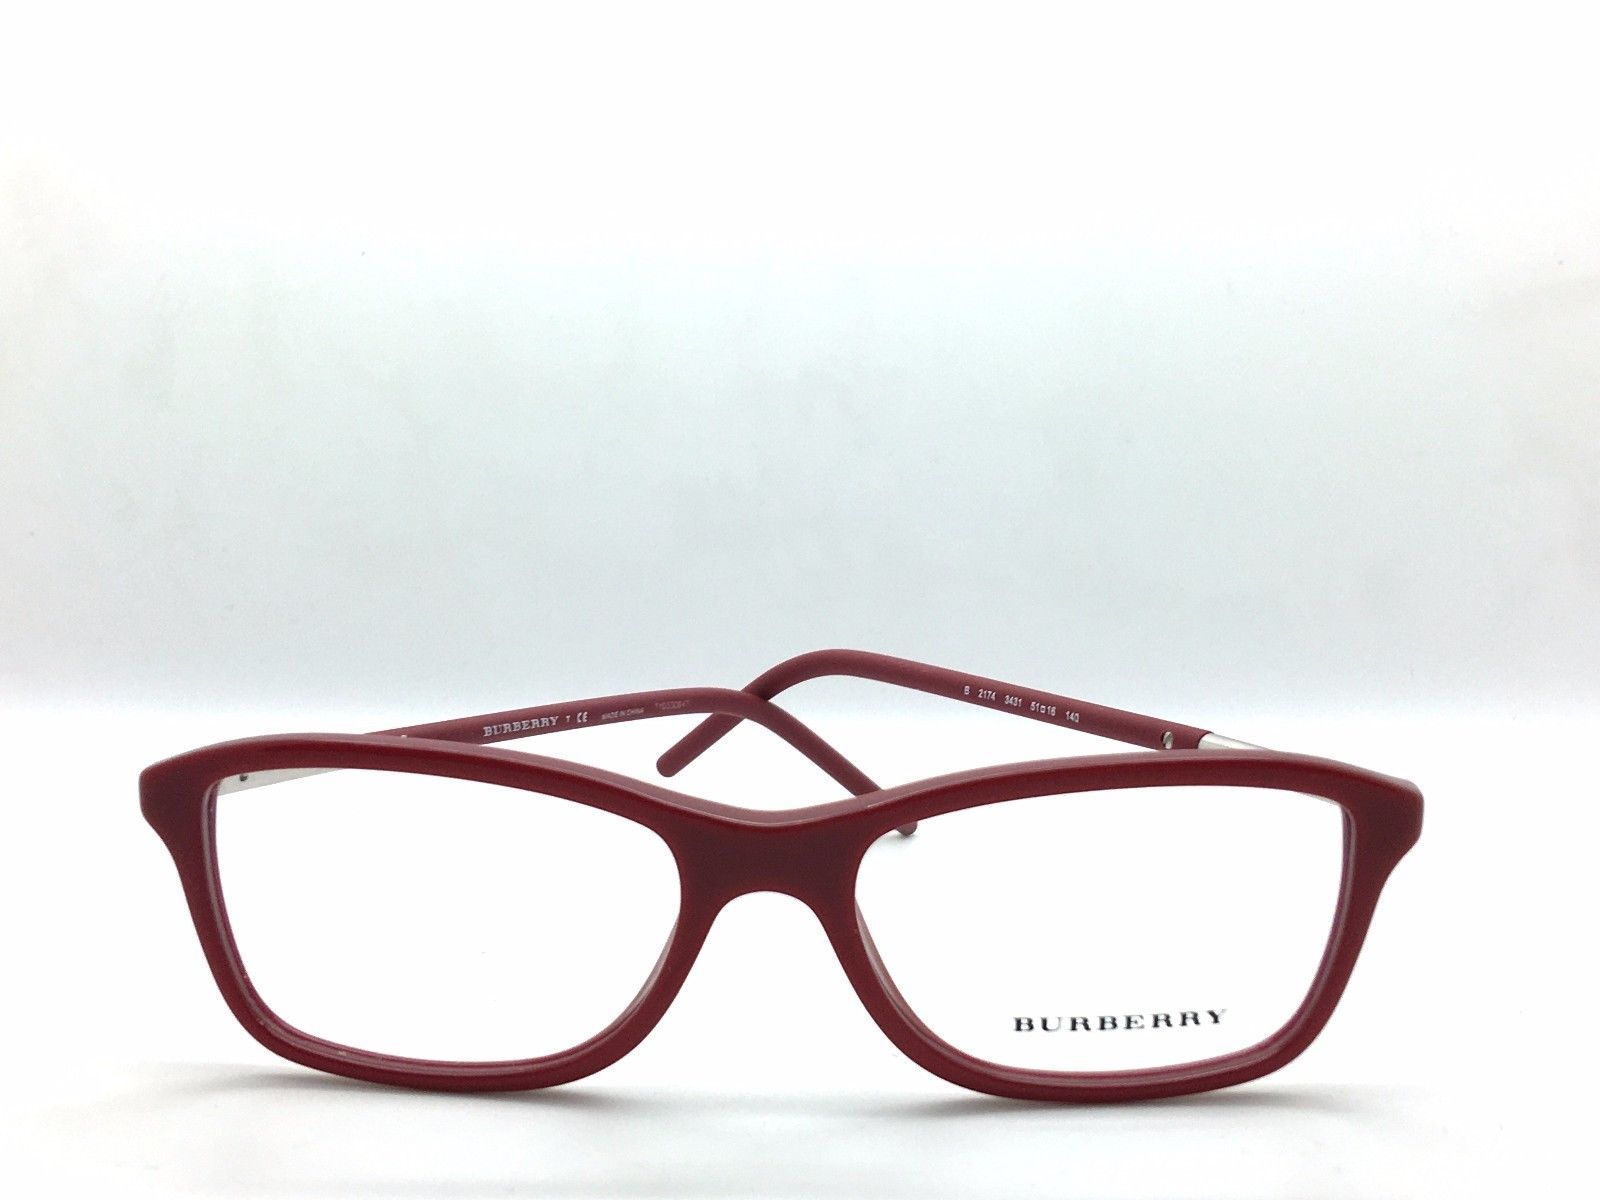 8a8a420532 B 2174 3431 New Authentic BURBERRY EYEGLASSES FRAME 51-16-140